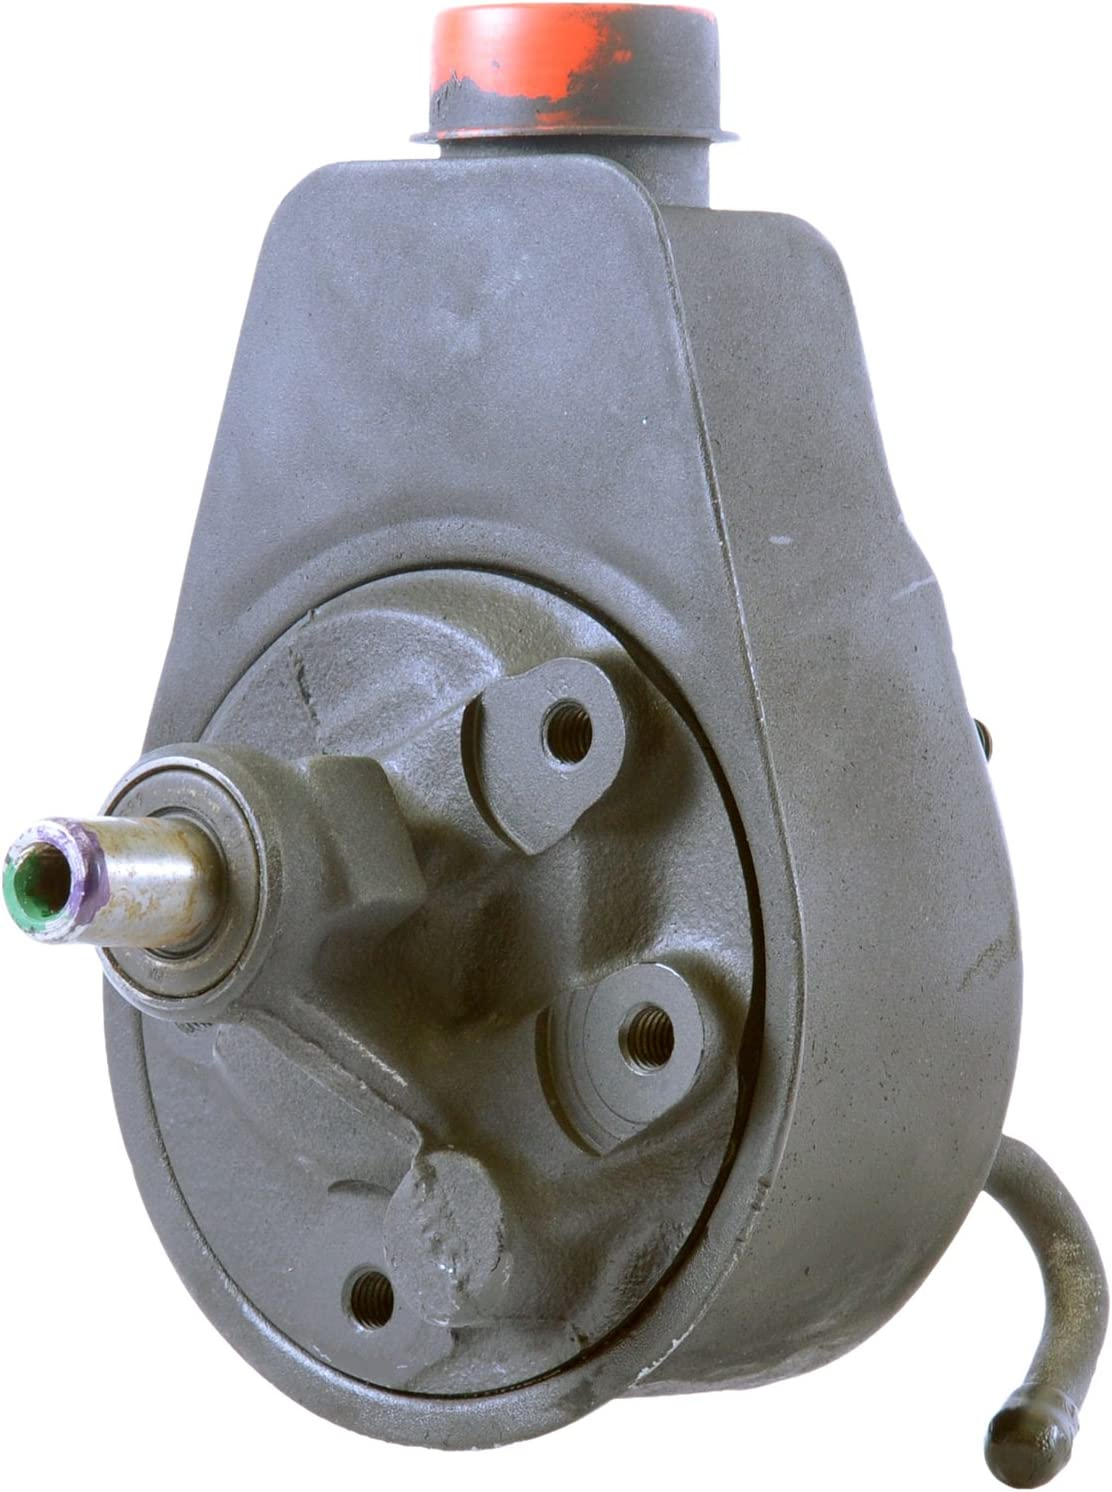 ACDelco 36P1298 Professional Power Steering Pump Remanufactured